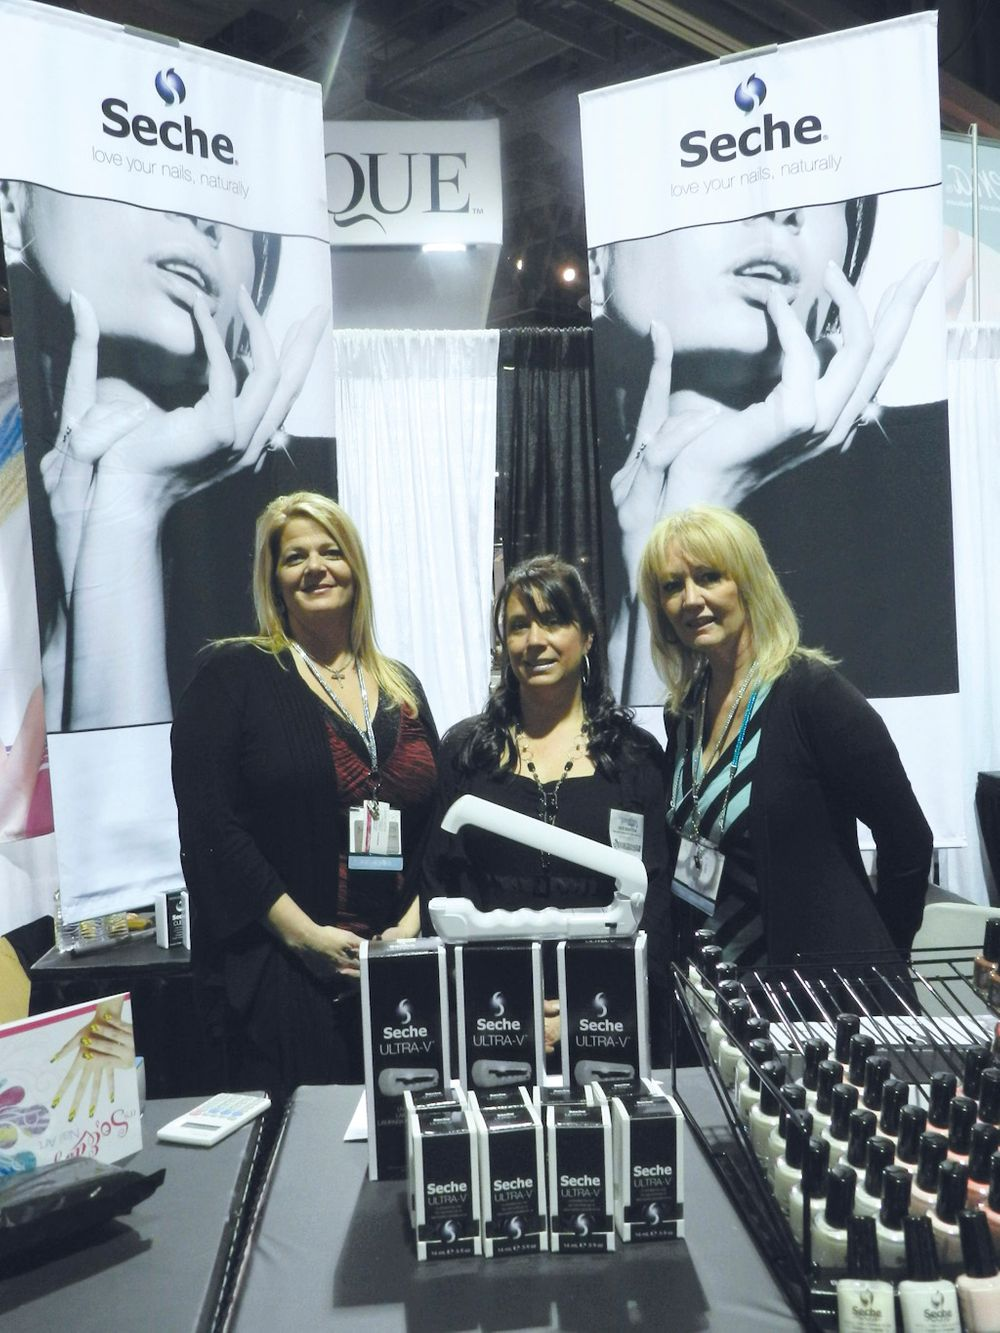 <p>Lori Golling, Heidi Bratton, and Carey Lucchesi talked up the Seche product line.</p>